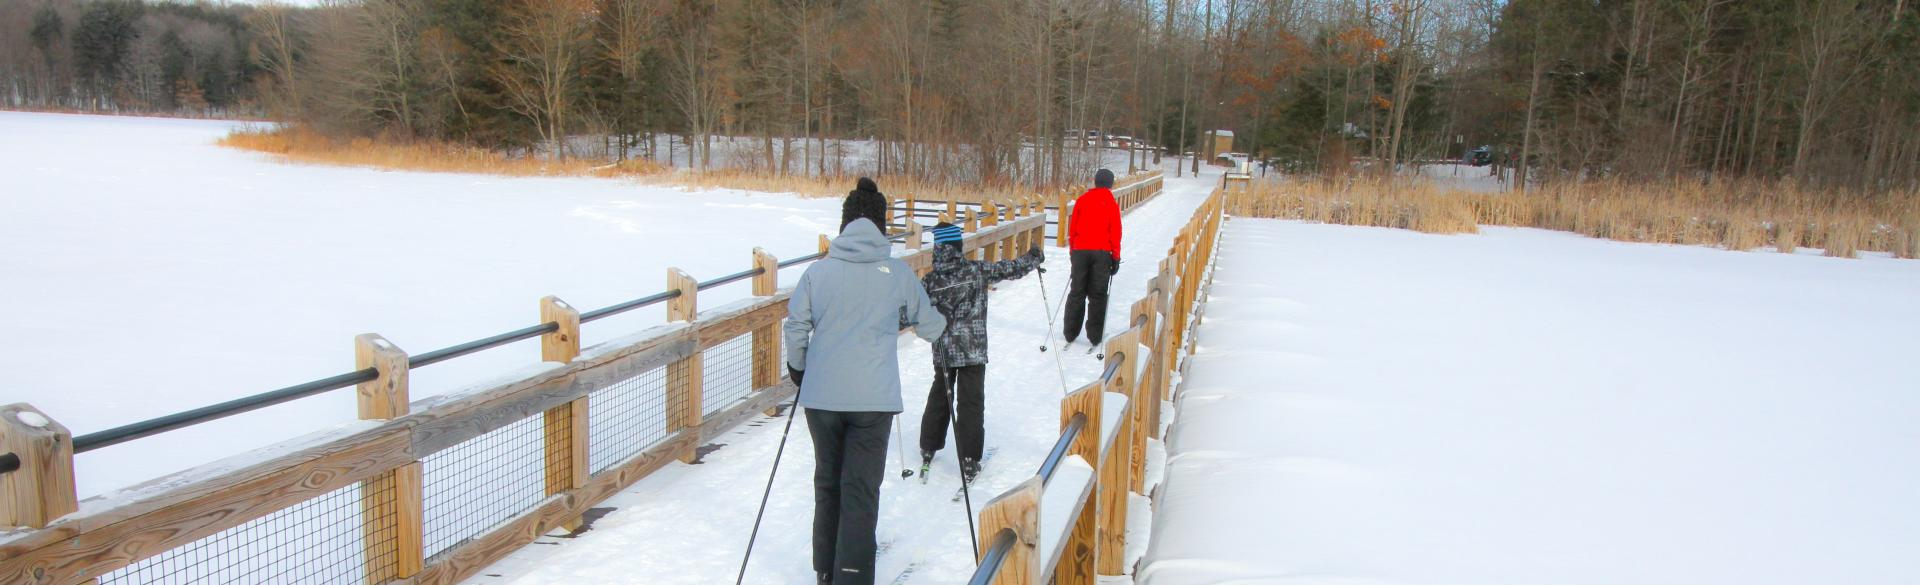 A family crossing the bridge while cross country skiing at Pickerel Lake.